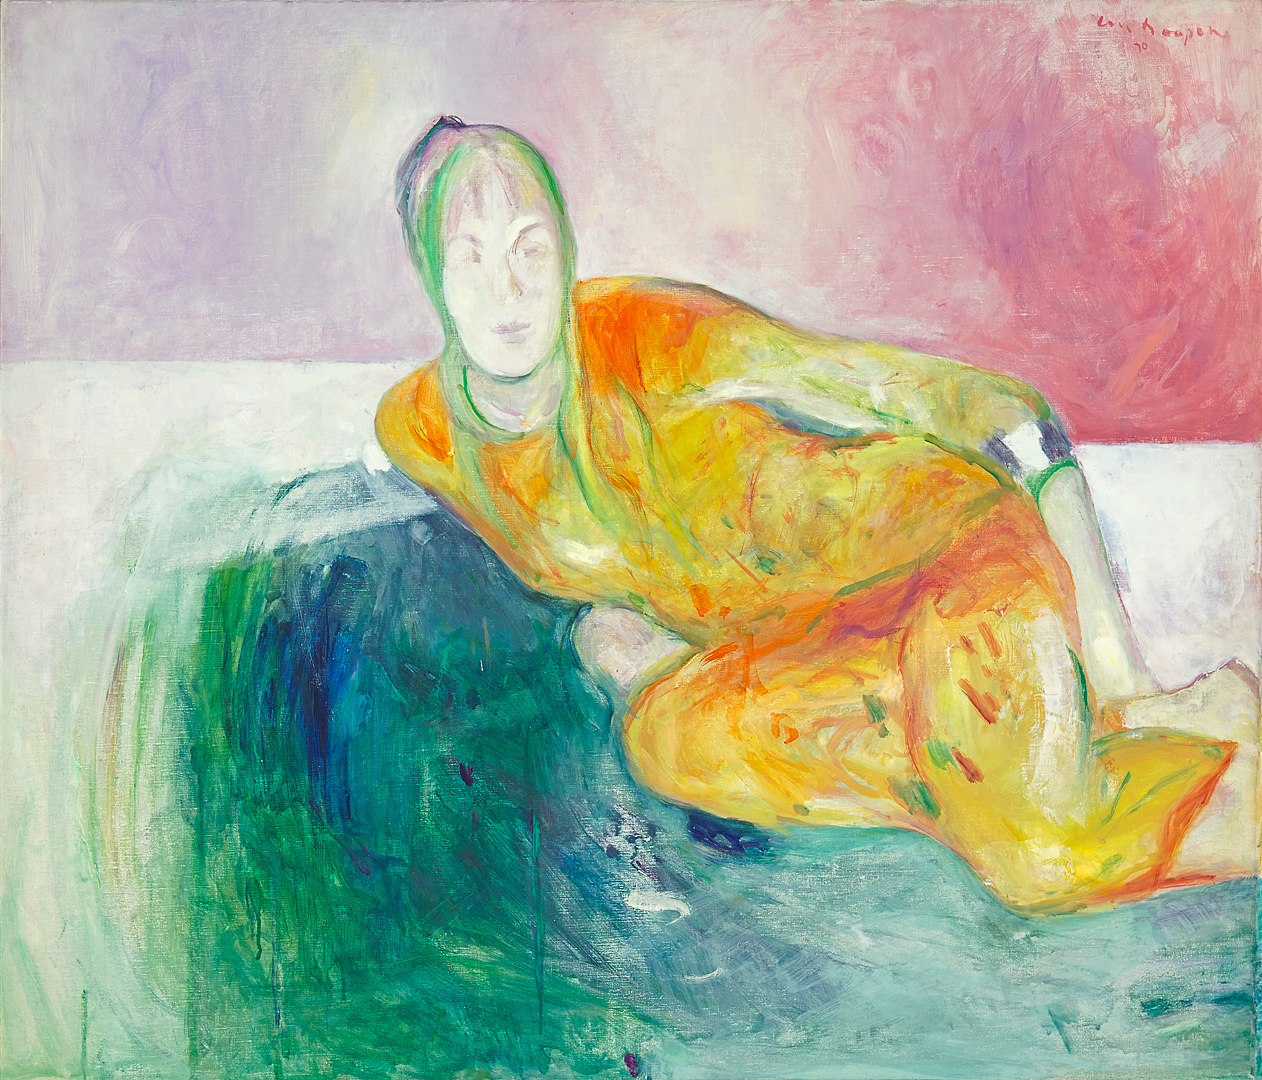 Leunende vrouw, 1970 Paul Hugo ten Hoopen (1927-) - Kunsthandel Studio 2000